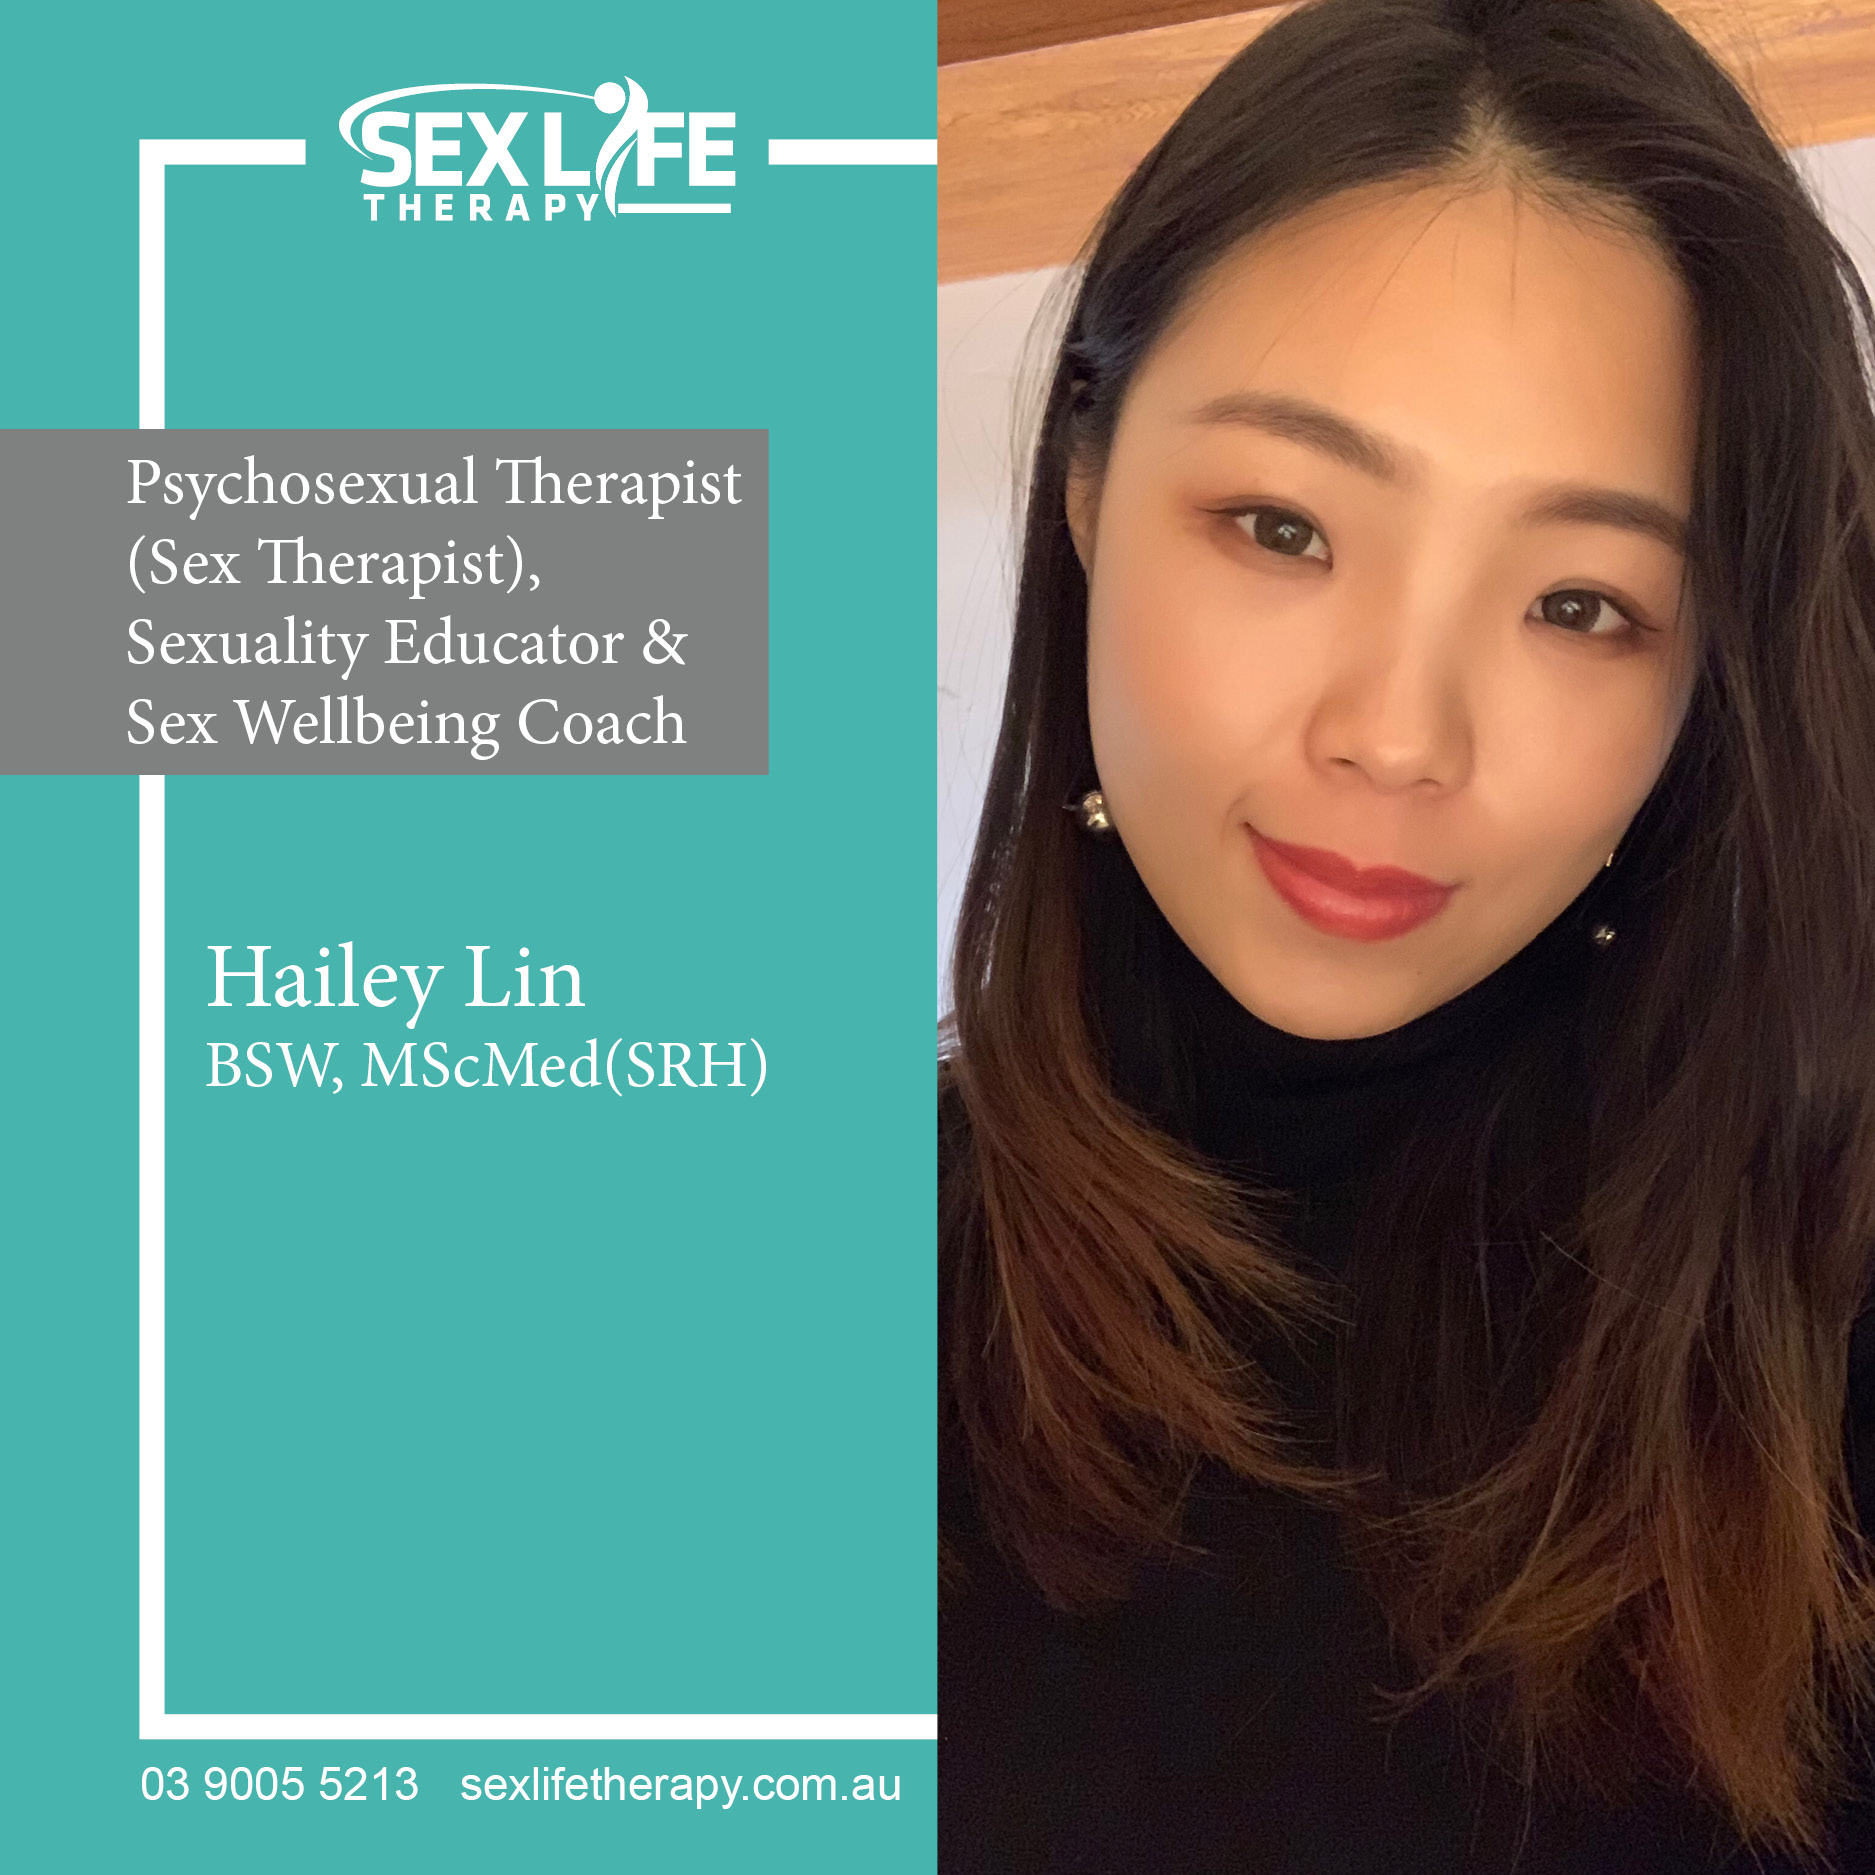 Hailey Lin @ Sex Life Therapy